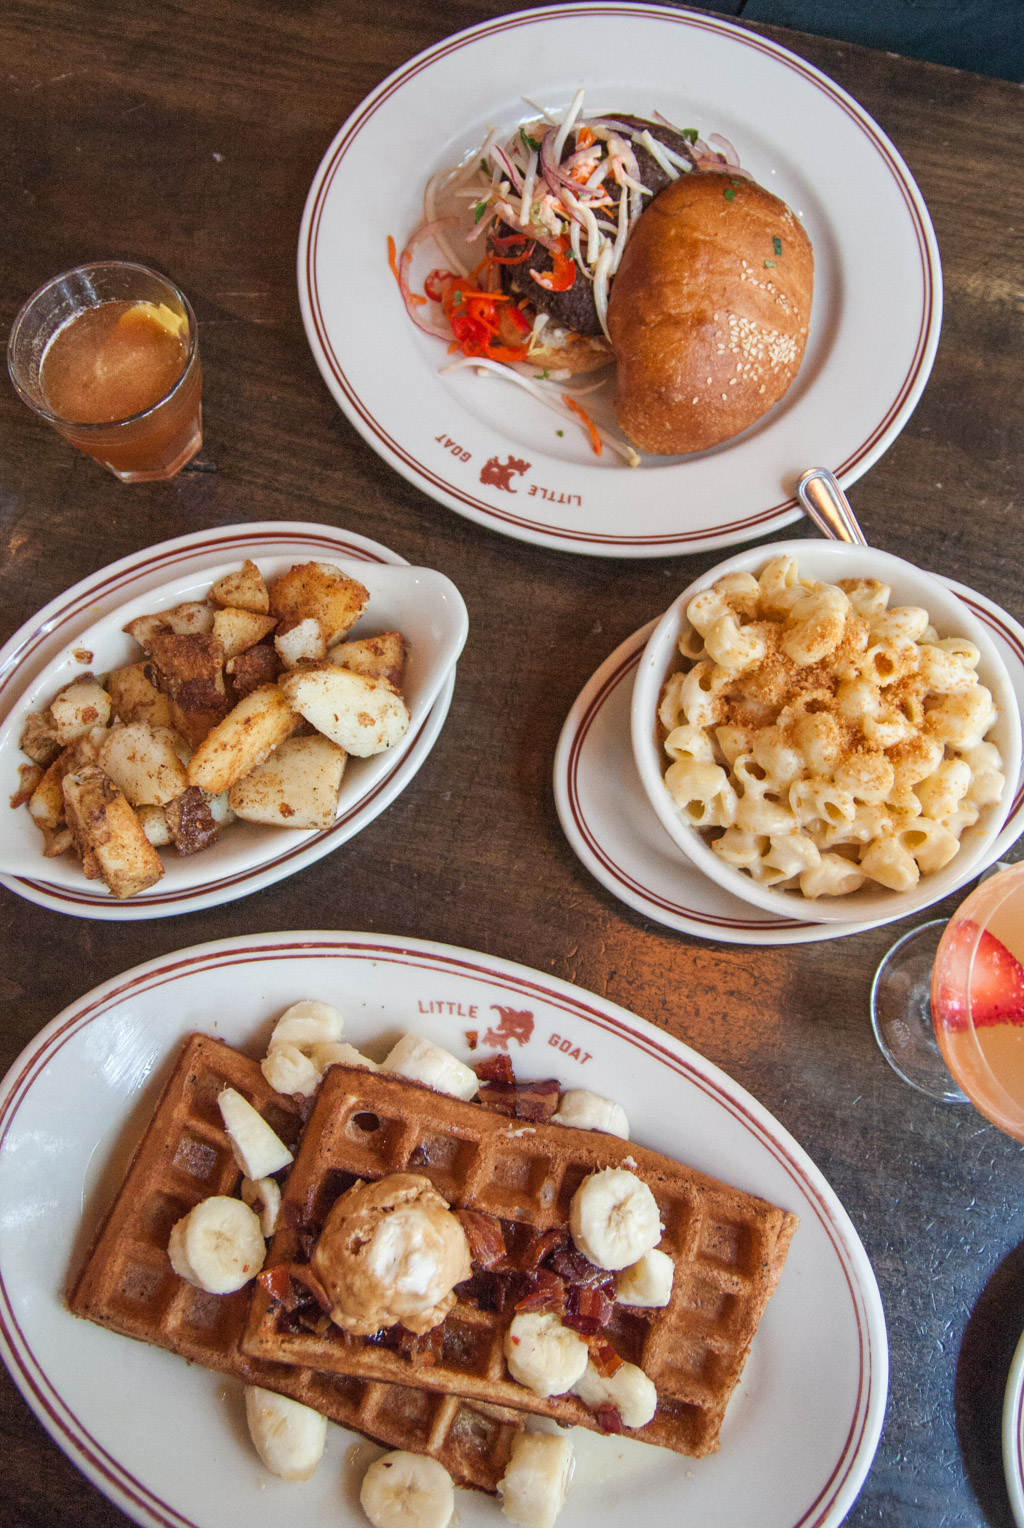 Fat Elvis Pancakes and Goat Burger with Sides, at Little Goat Diner, Chicago